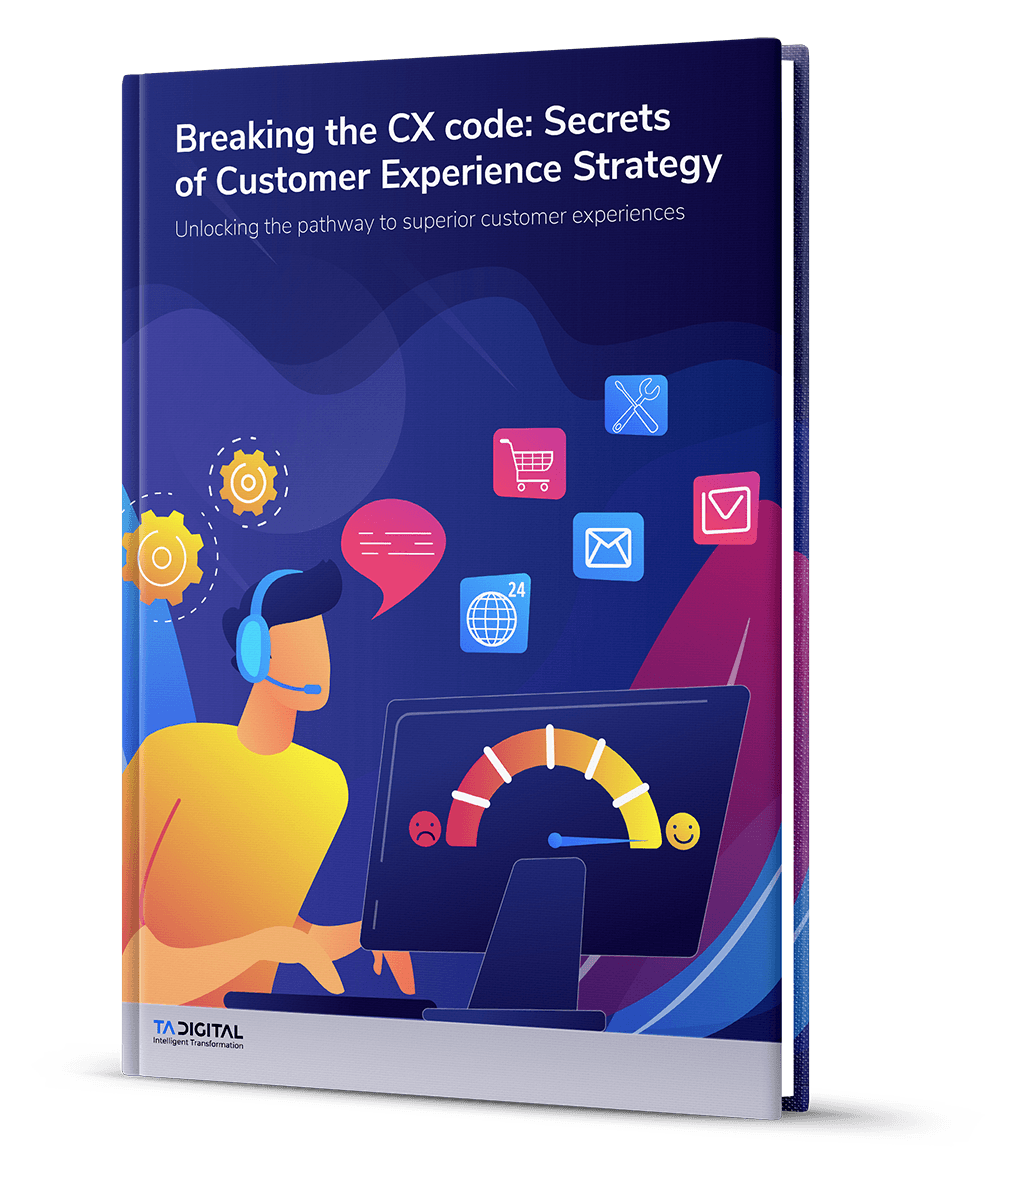 Breaking the CX Code: Secrets of Customer Experience Strategy